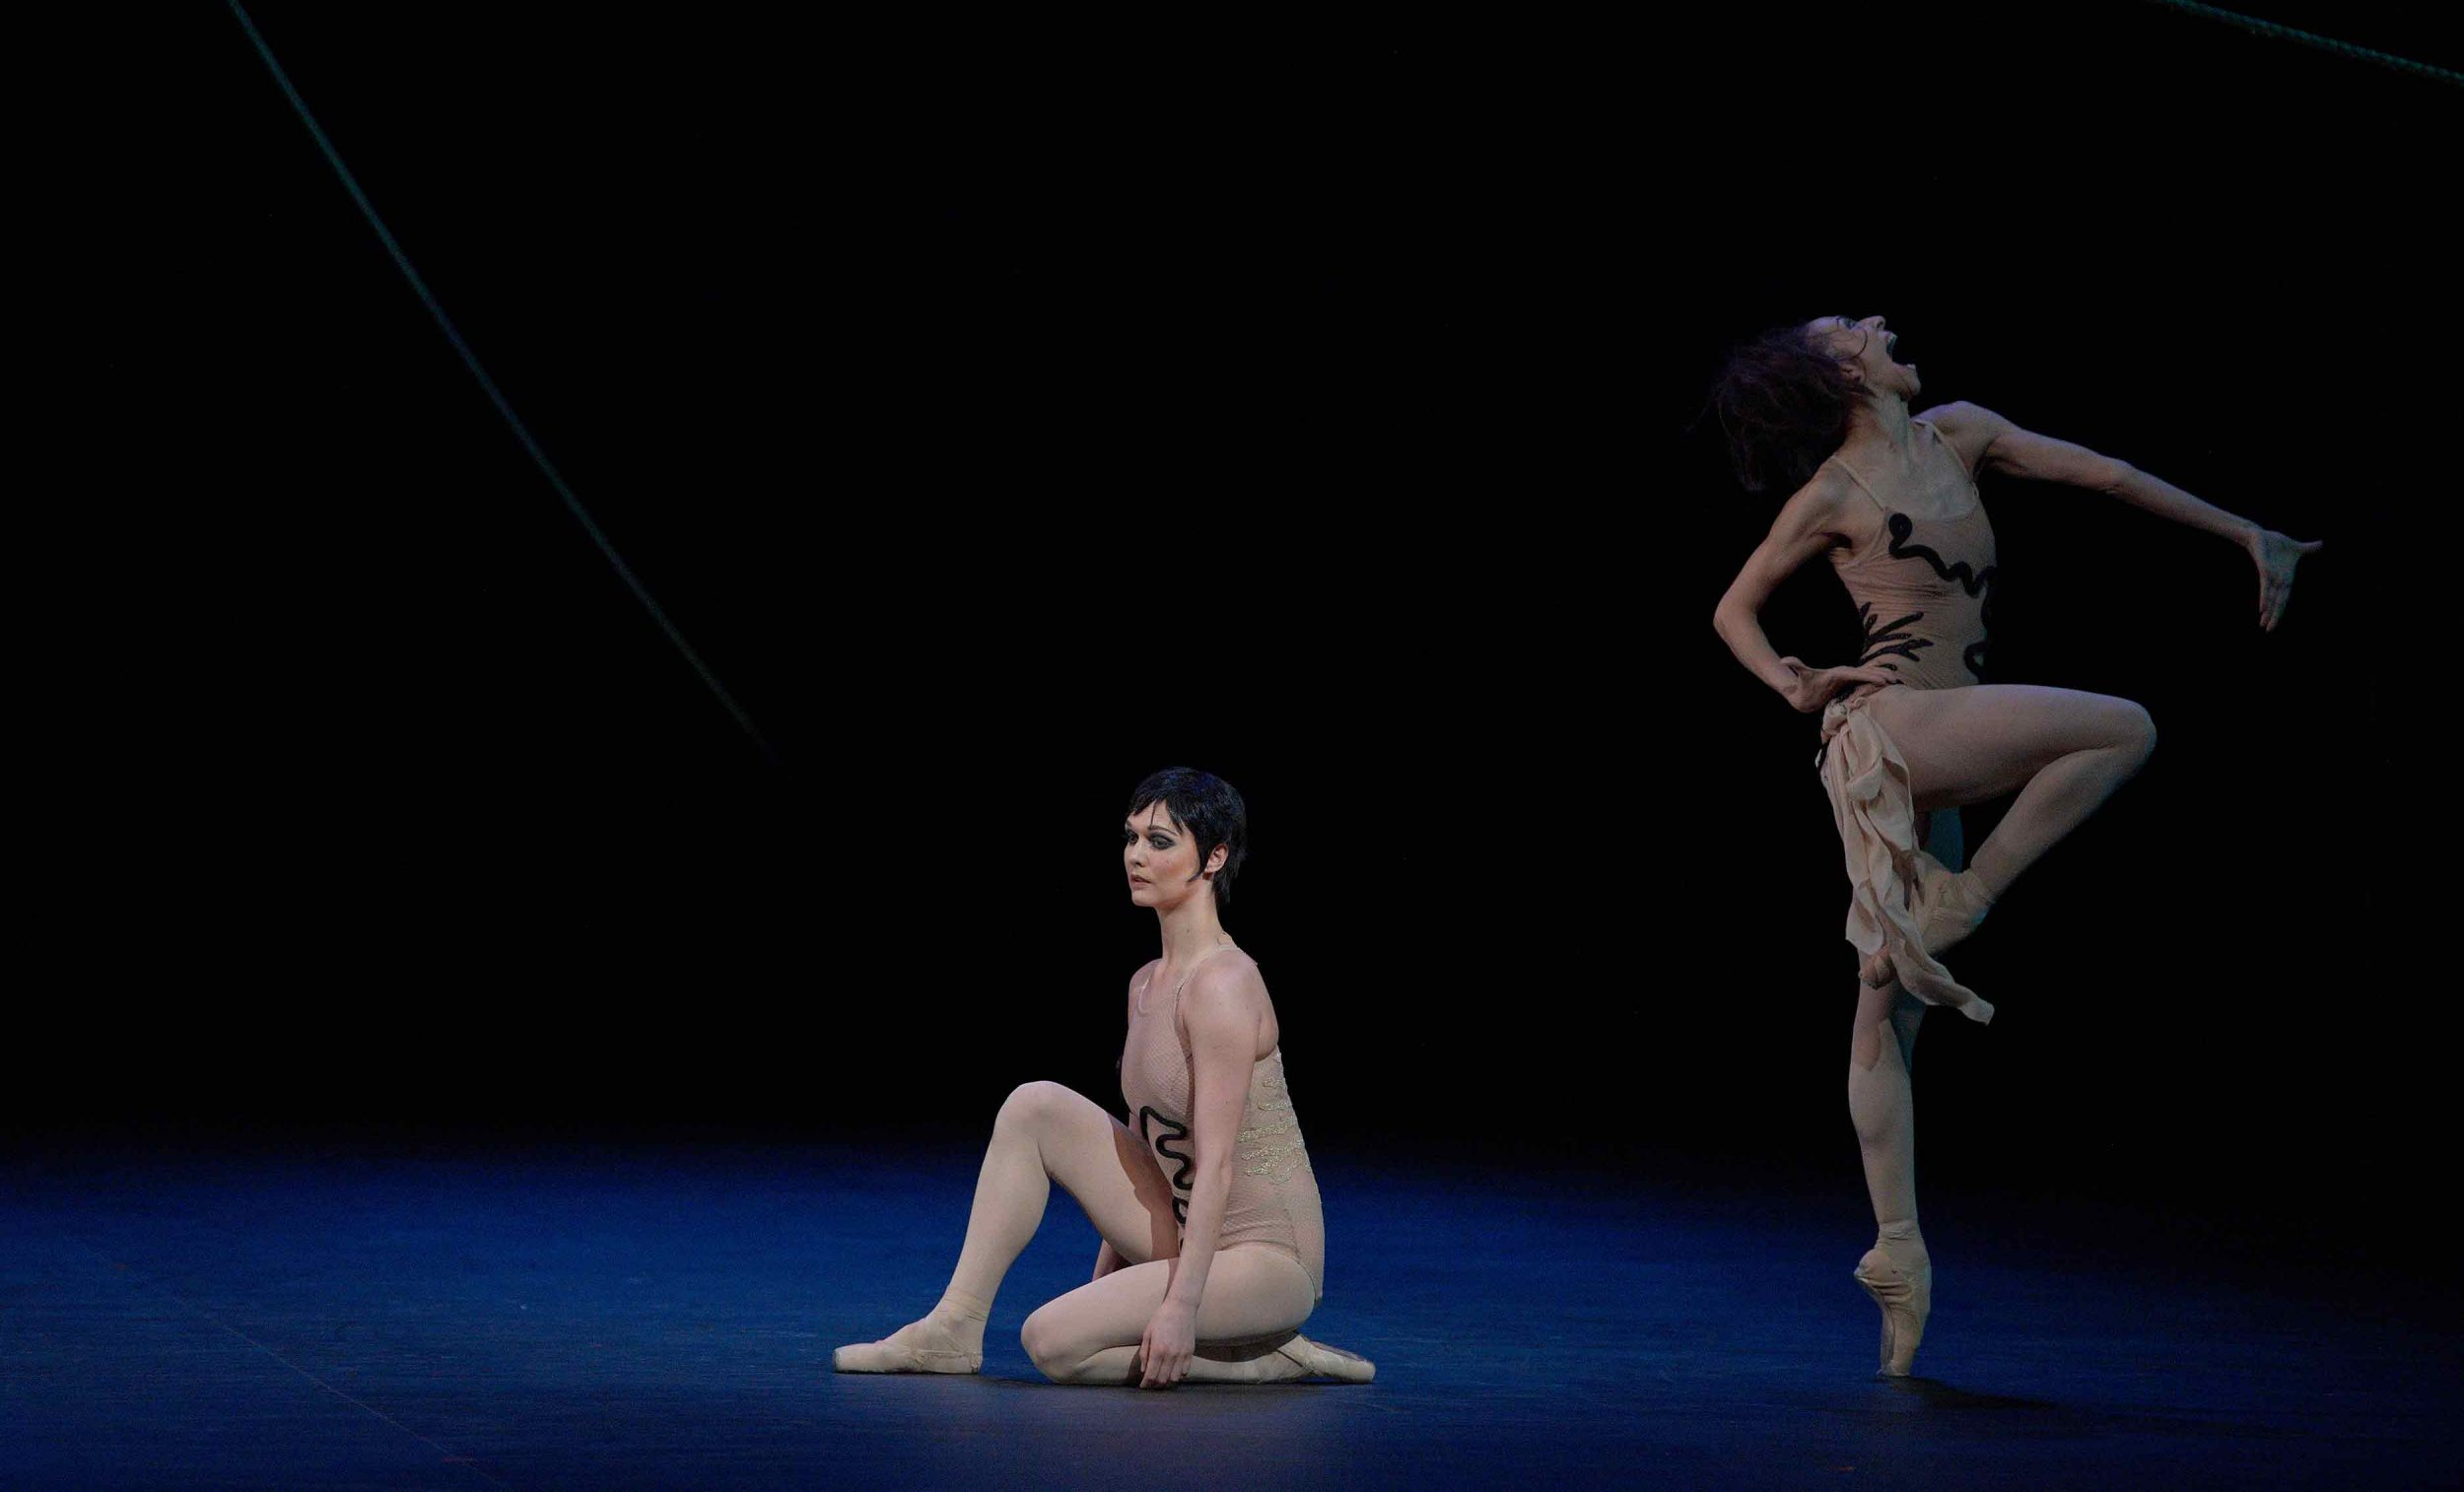 Jurgita-Dronina-and-Begona-Cao-in-The-Cage-by-Jerome-Robbins-©-Laurent-Liotardo-(2)